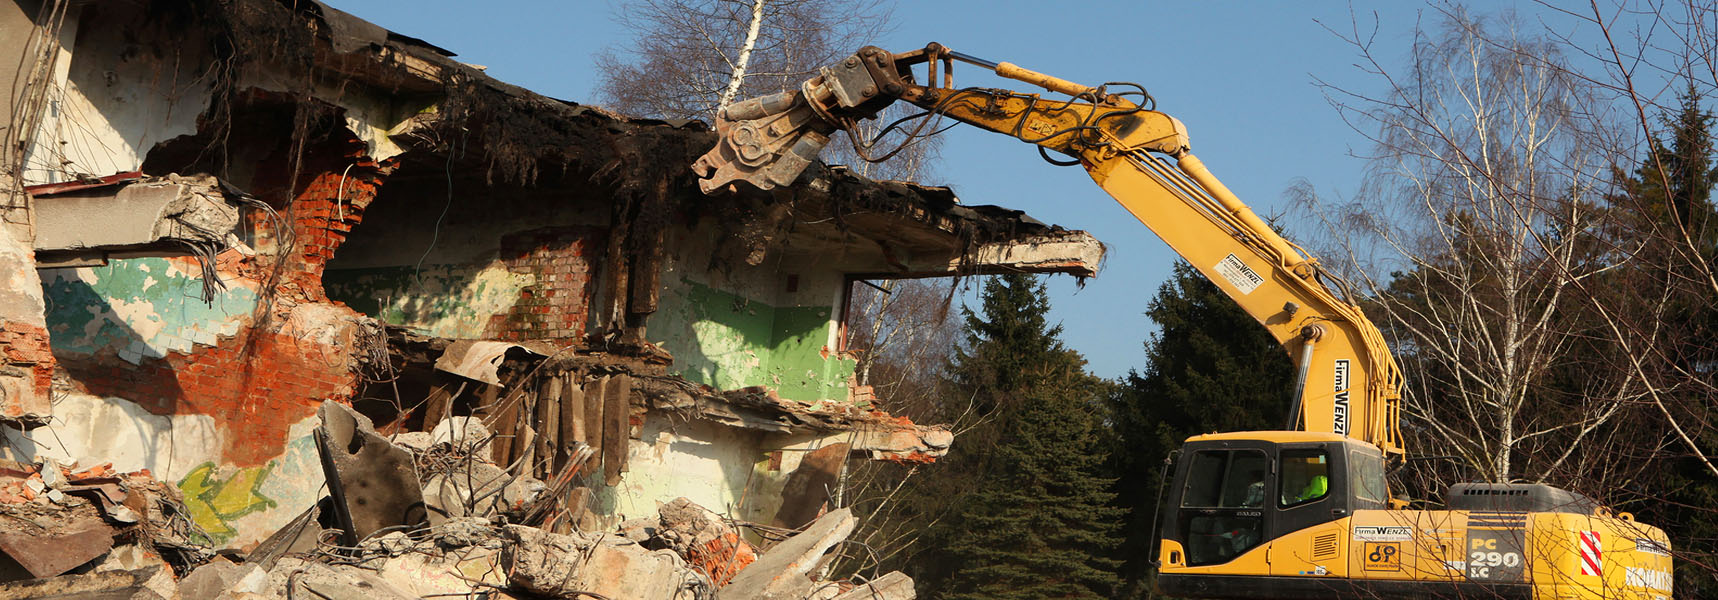 NJ residential demolition